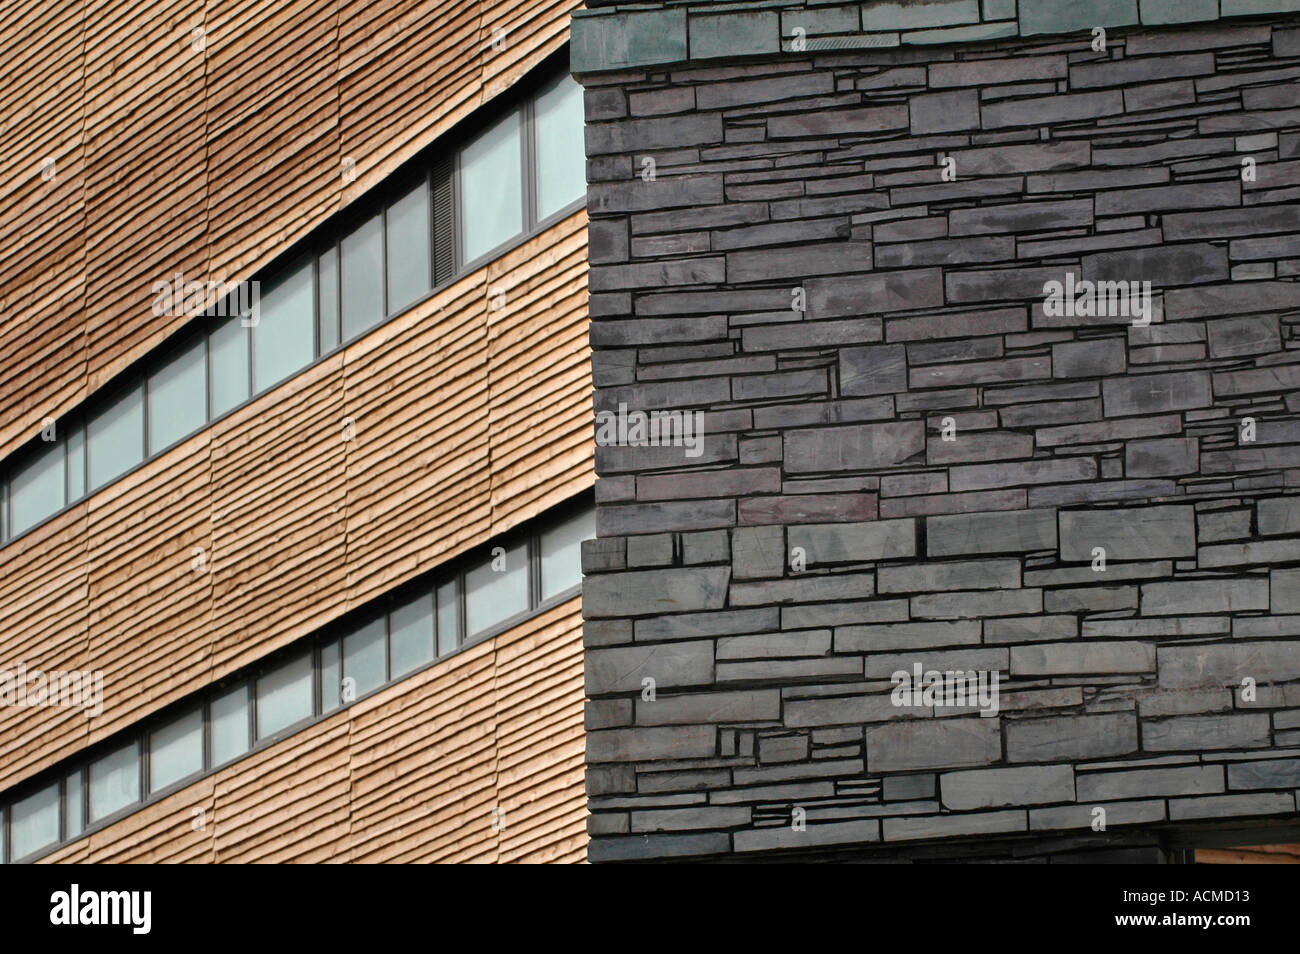 Welsh Slate Wall And Timber Cladding Exterior Details Of The Wales  Millennium Centre Cardiff Bay South Wales UK